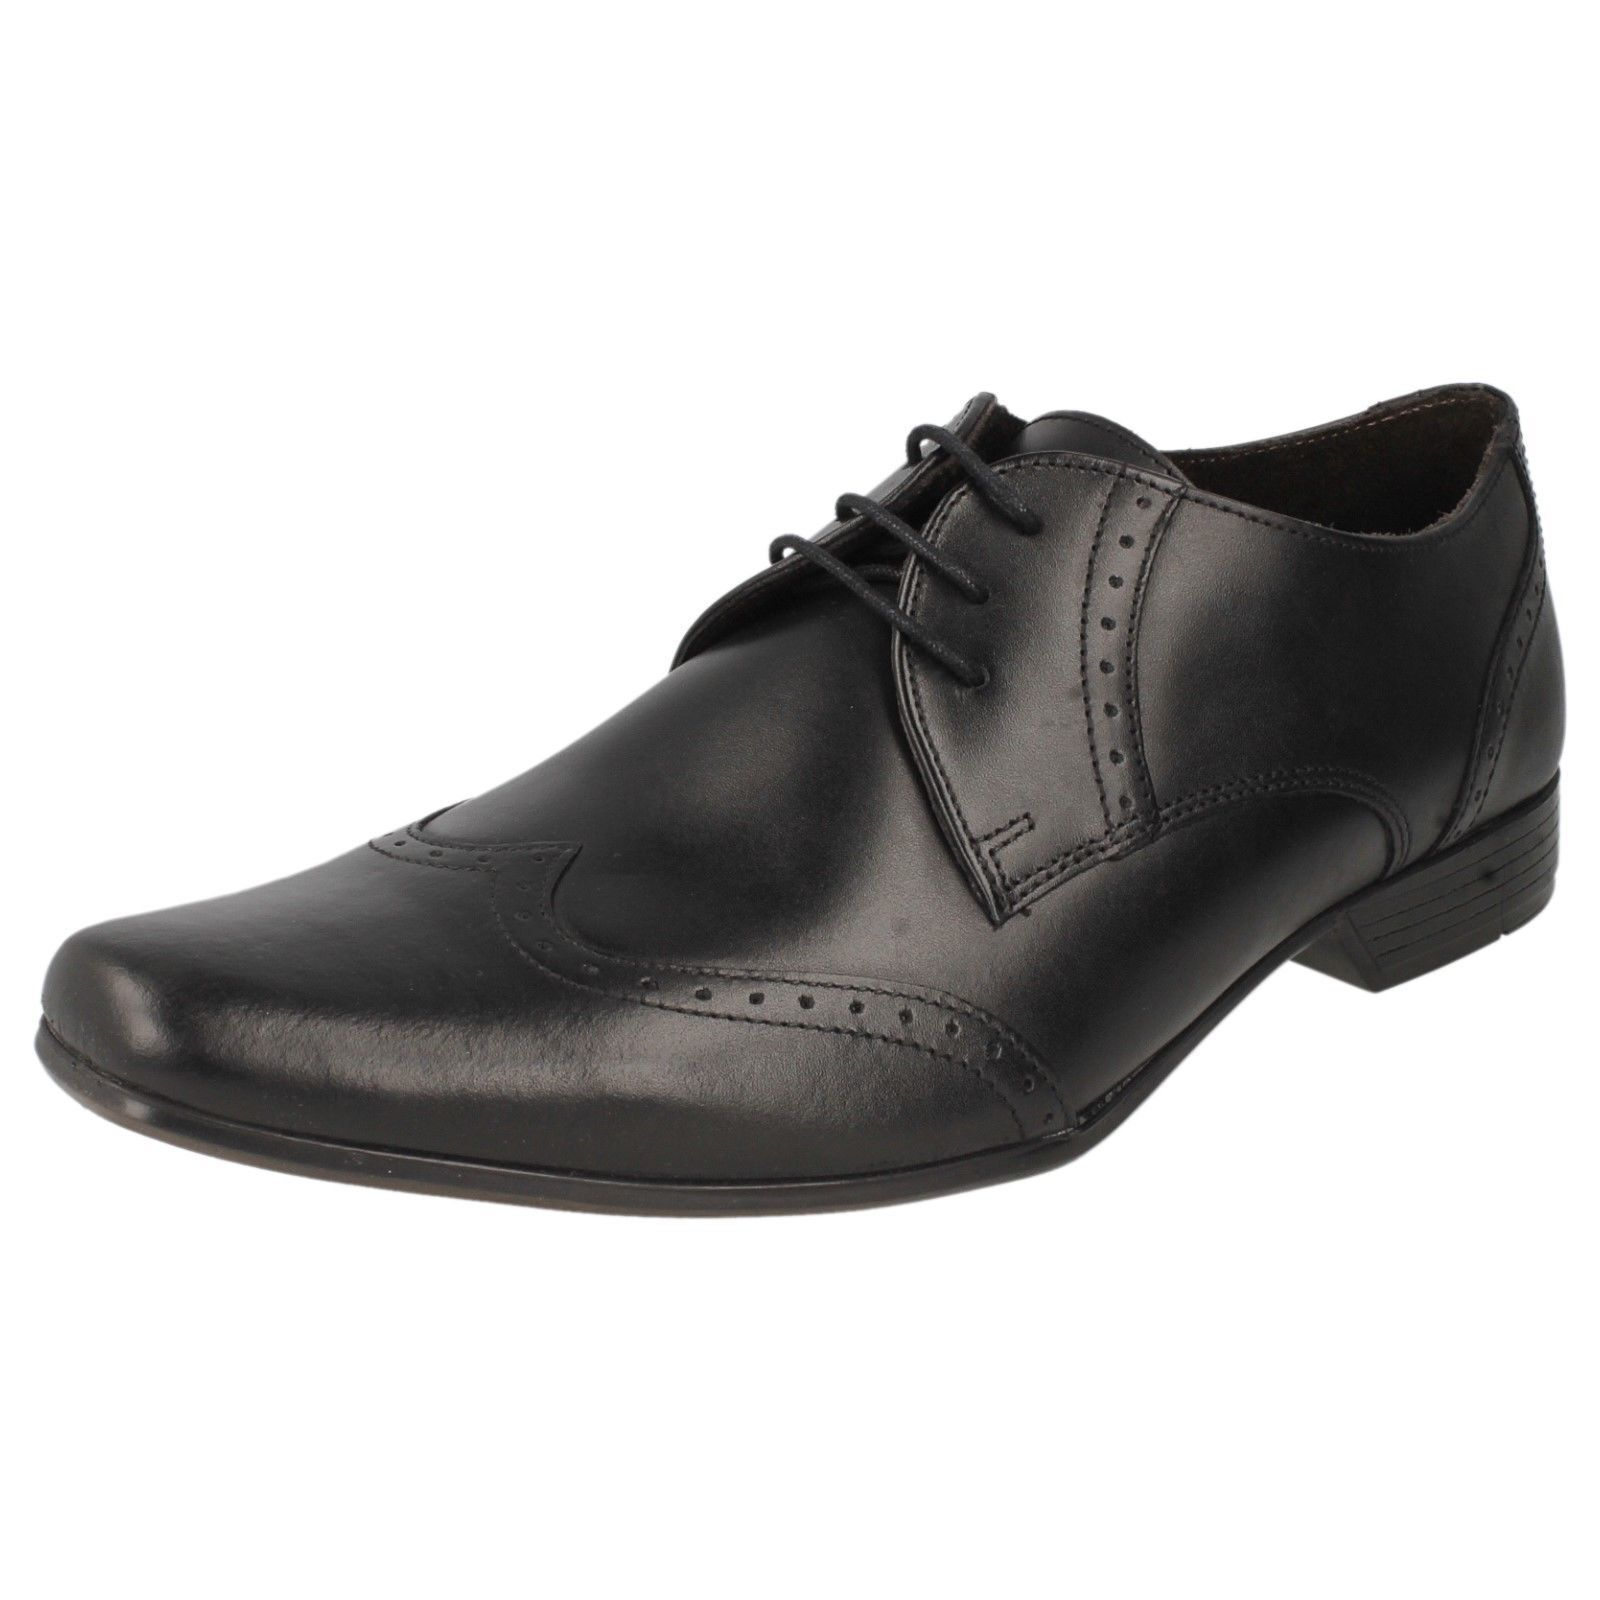 MENS BASE LONDON BLACK STYLE LEATHER BROGUE STYLE SHOES STYLE BLACK BUGSY MTO a2cee3